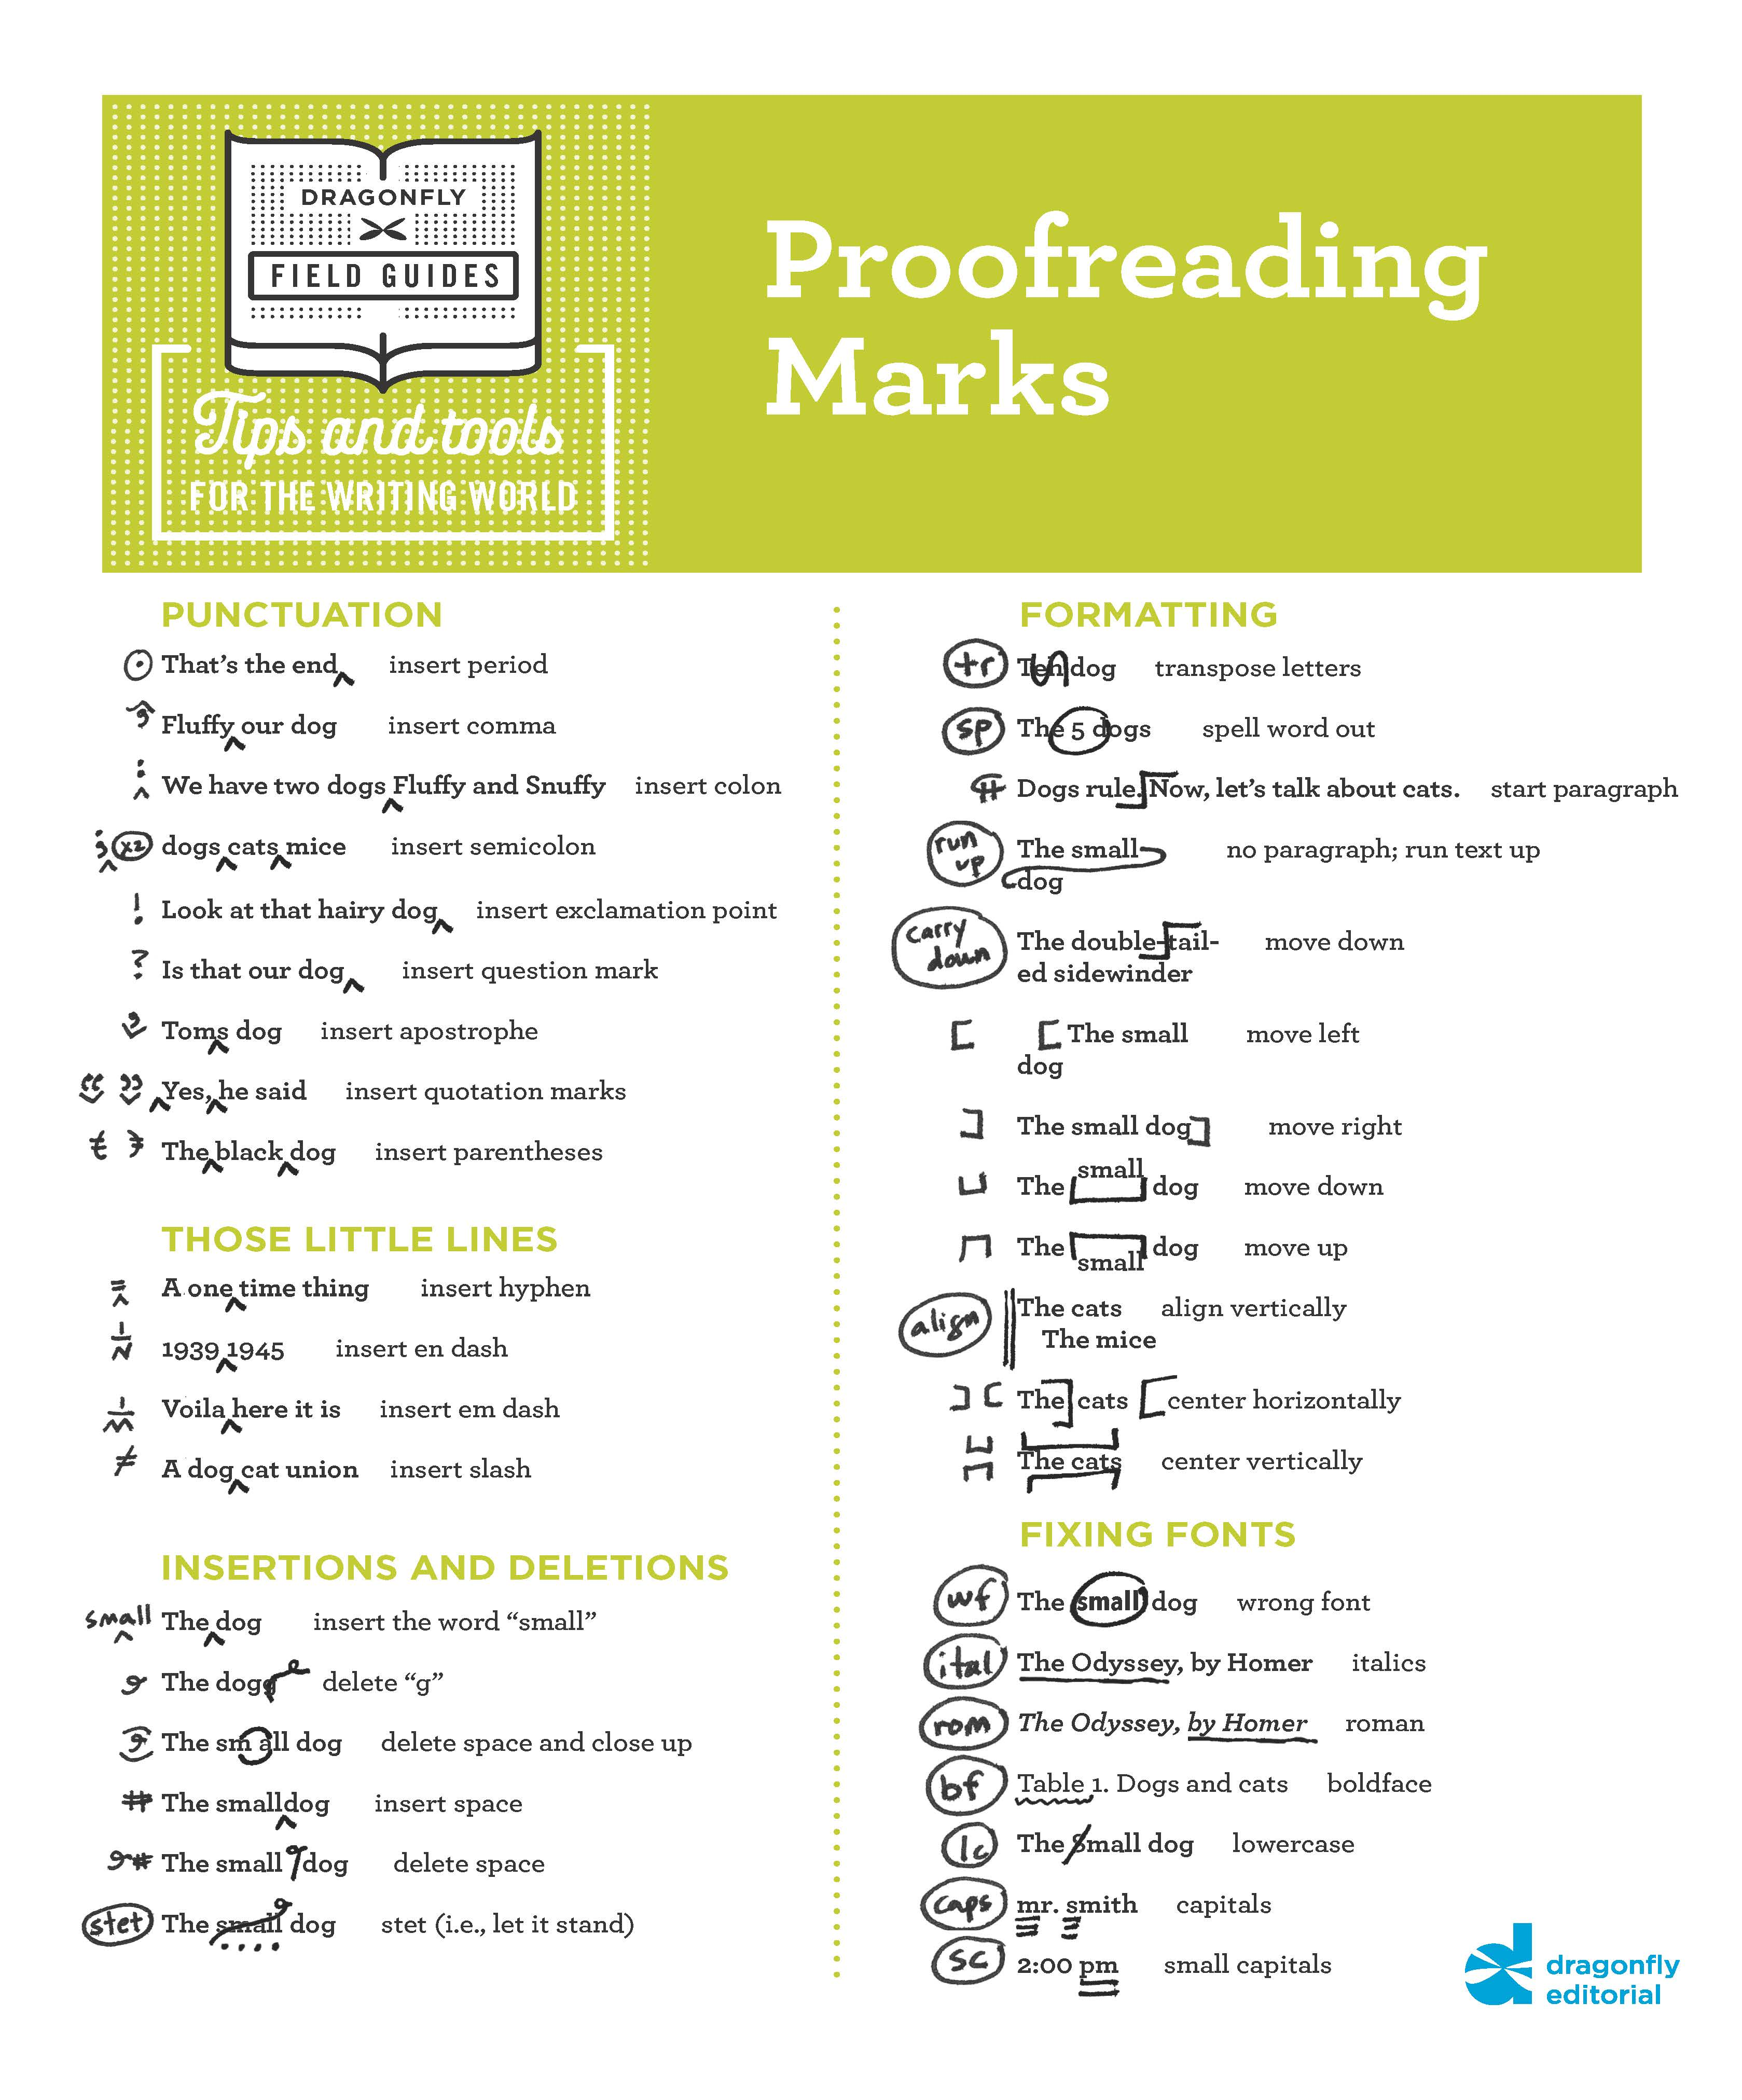 Dragonfly S Guide To Proofreading Marks